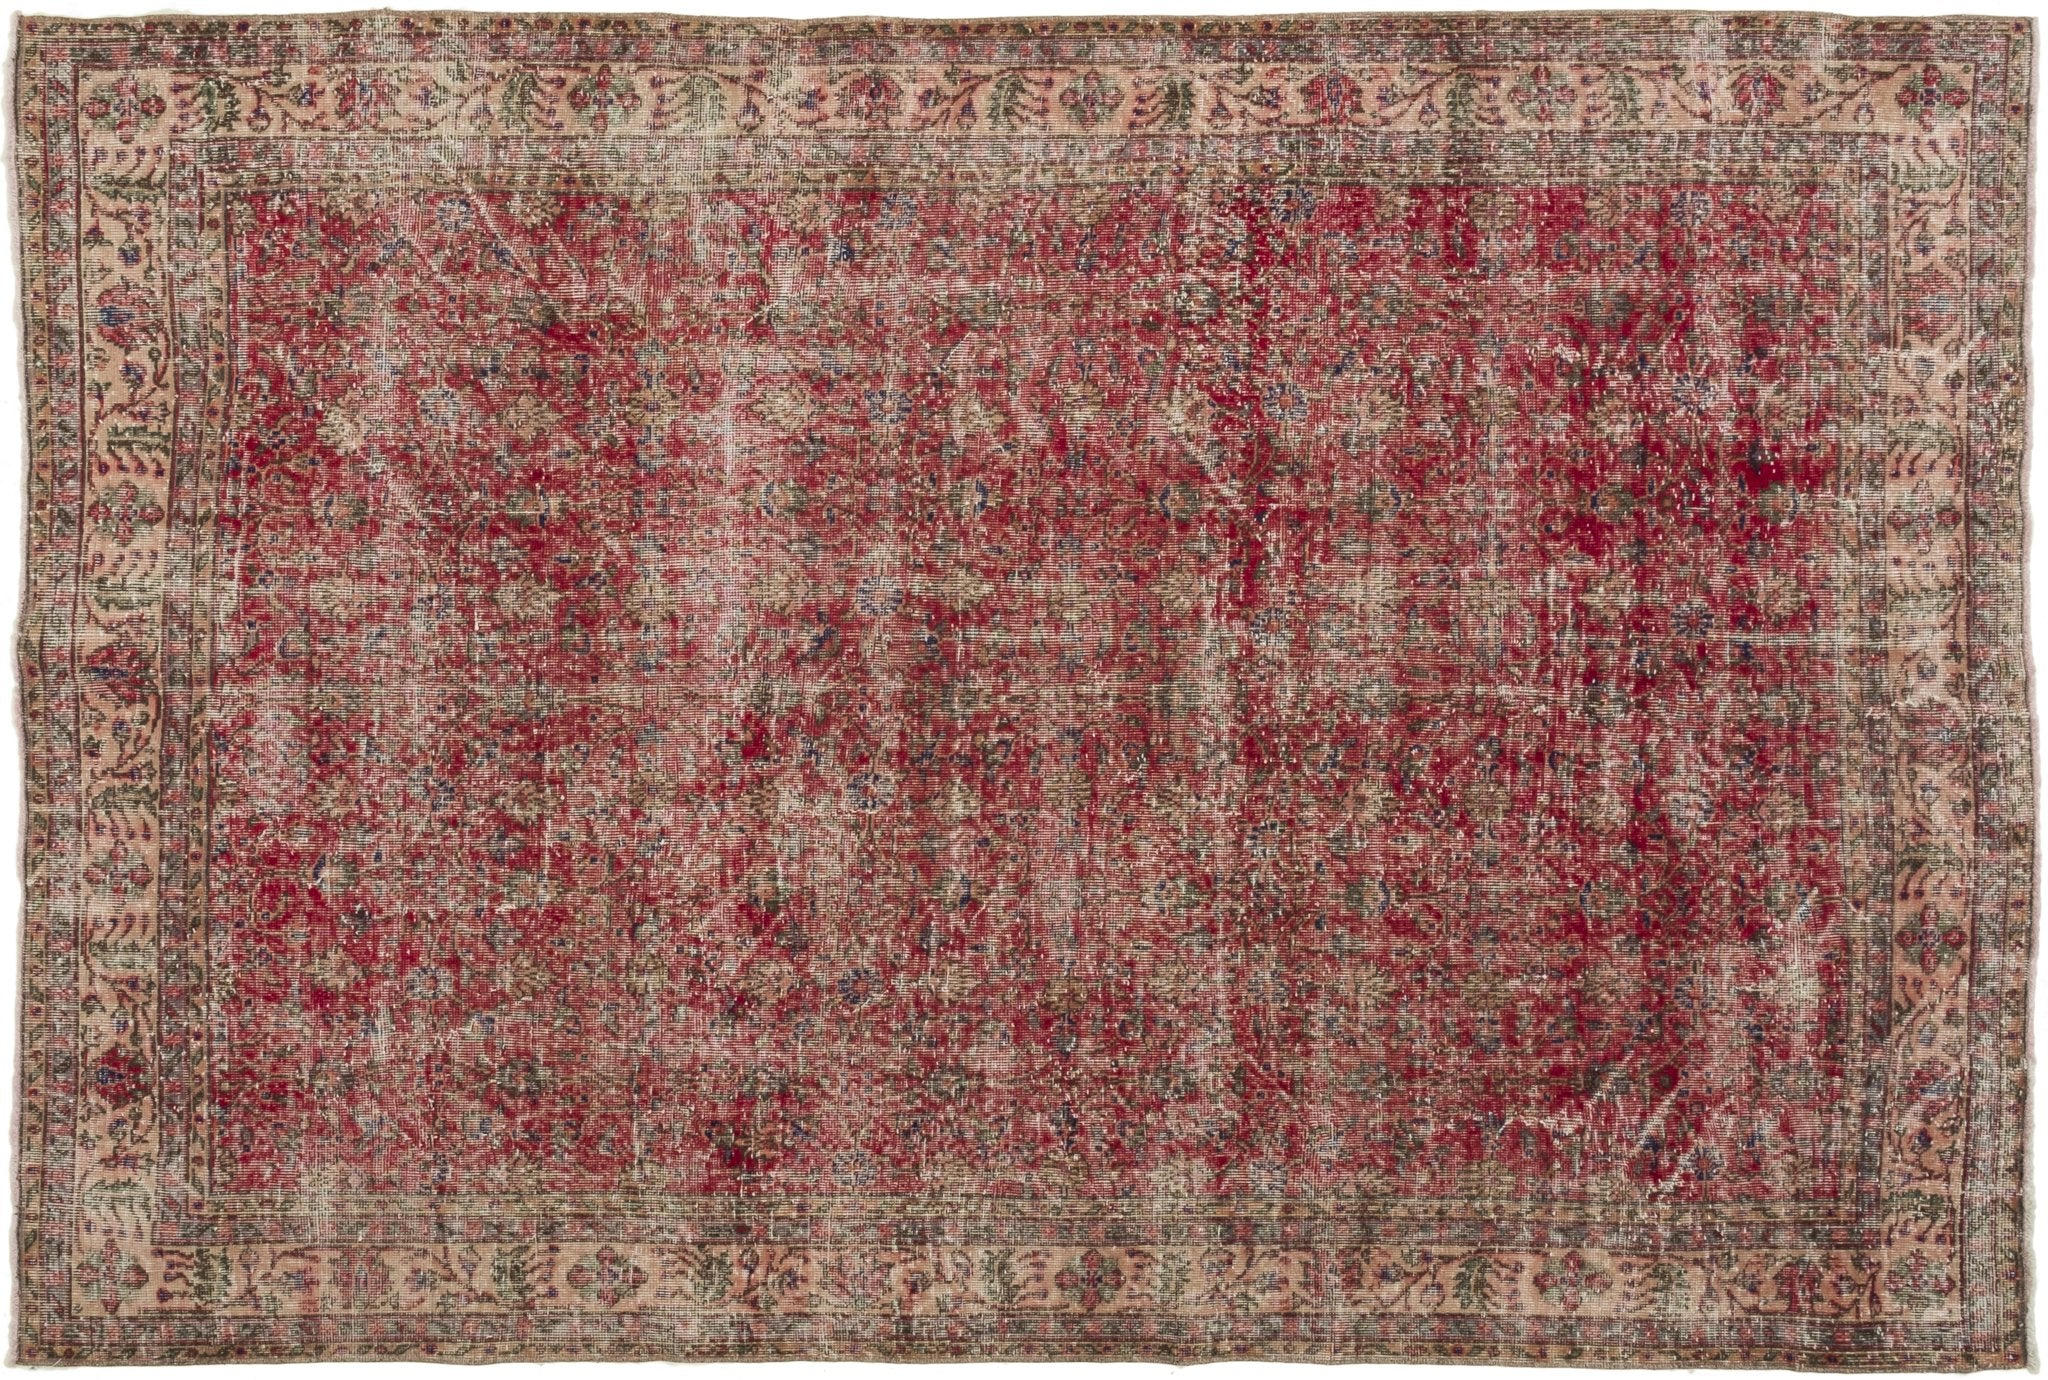 Vintage Overdyed Rug Alliette